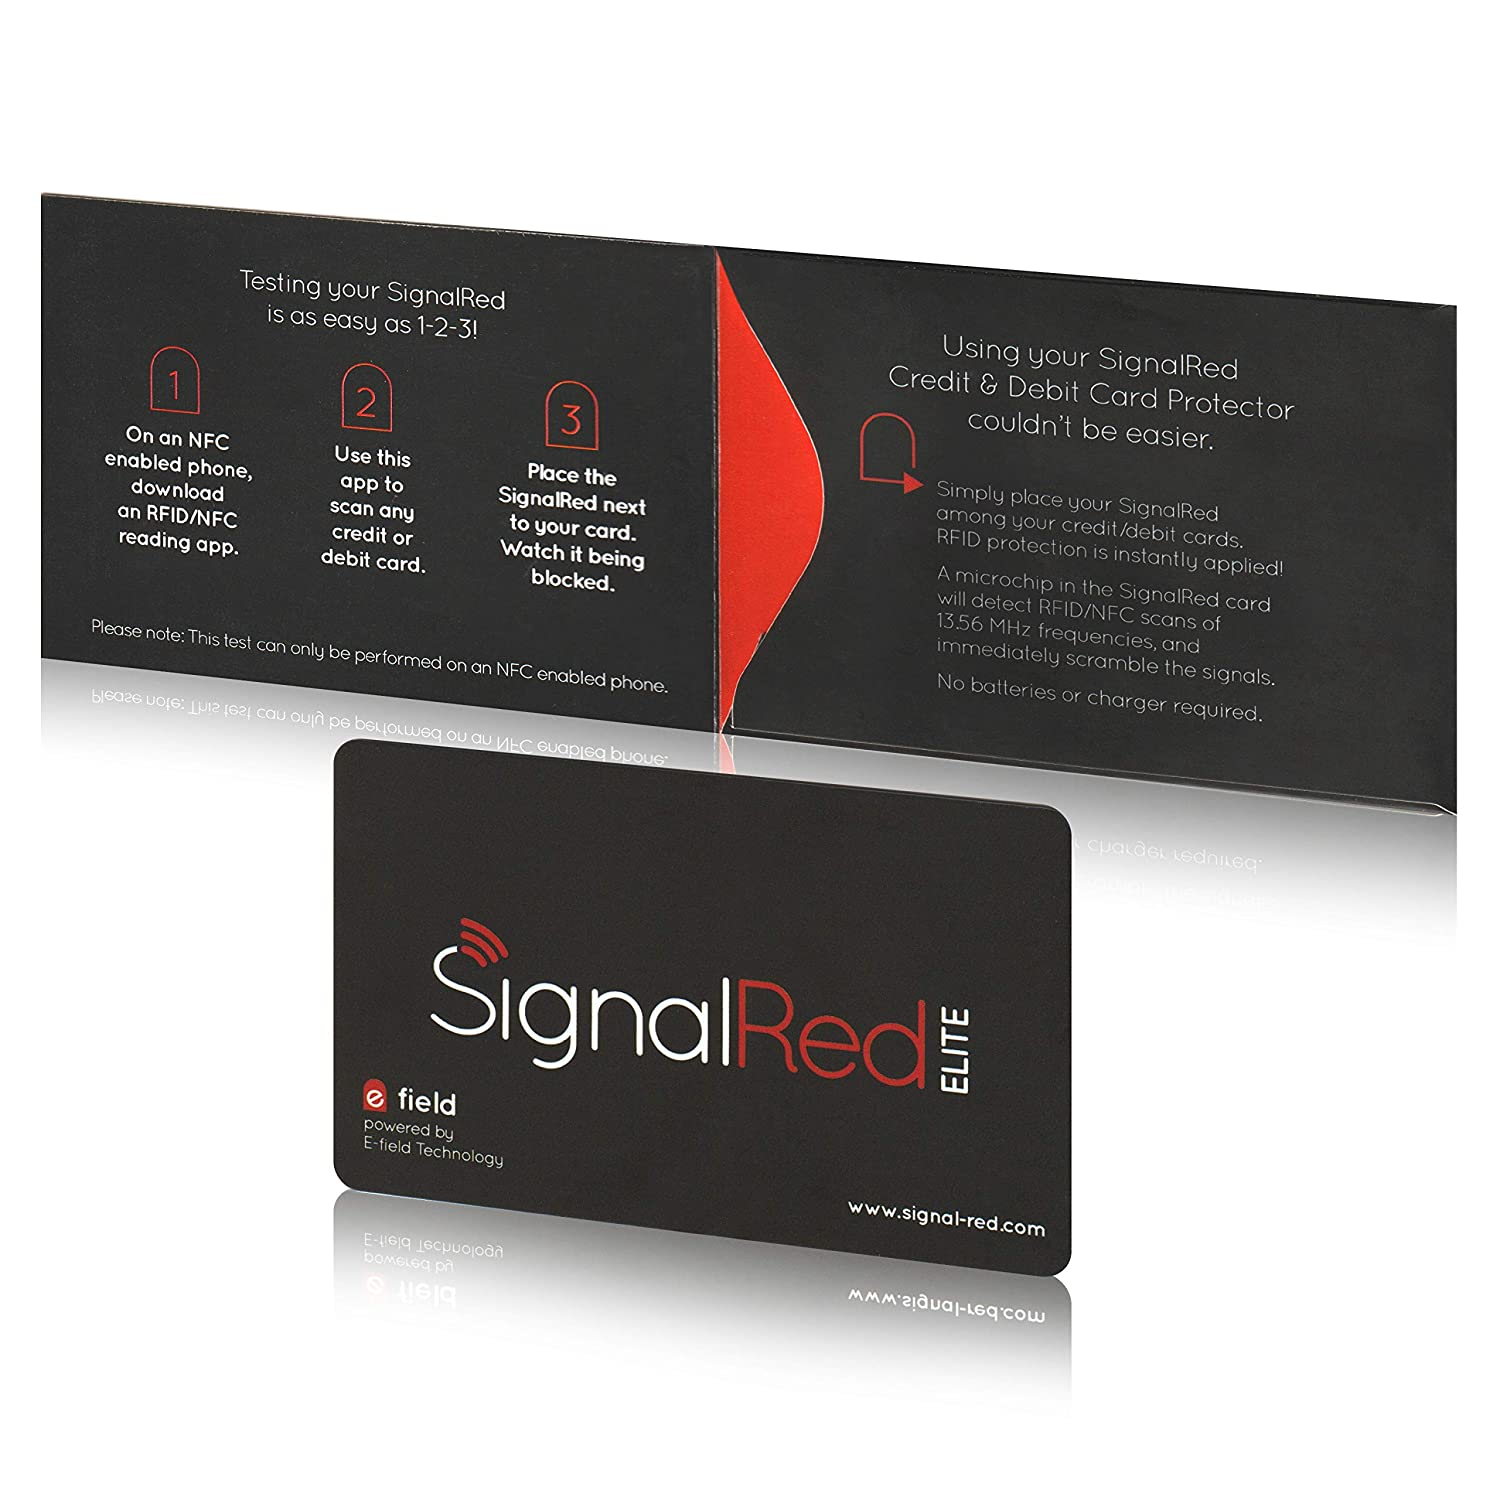 Credit Card Protector - 1 RFID Blocking Card Does All to Block RFID/NFC  Signals Form Credit Cards and Passports